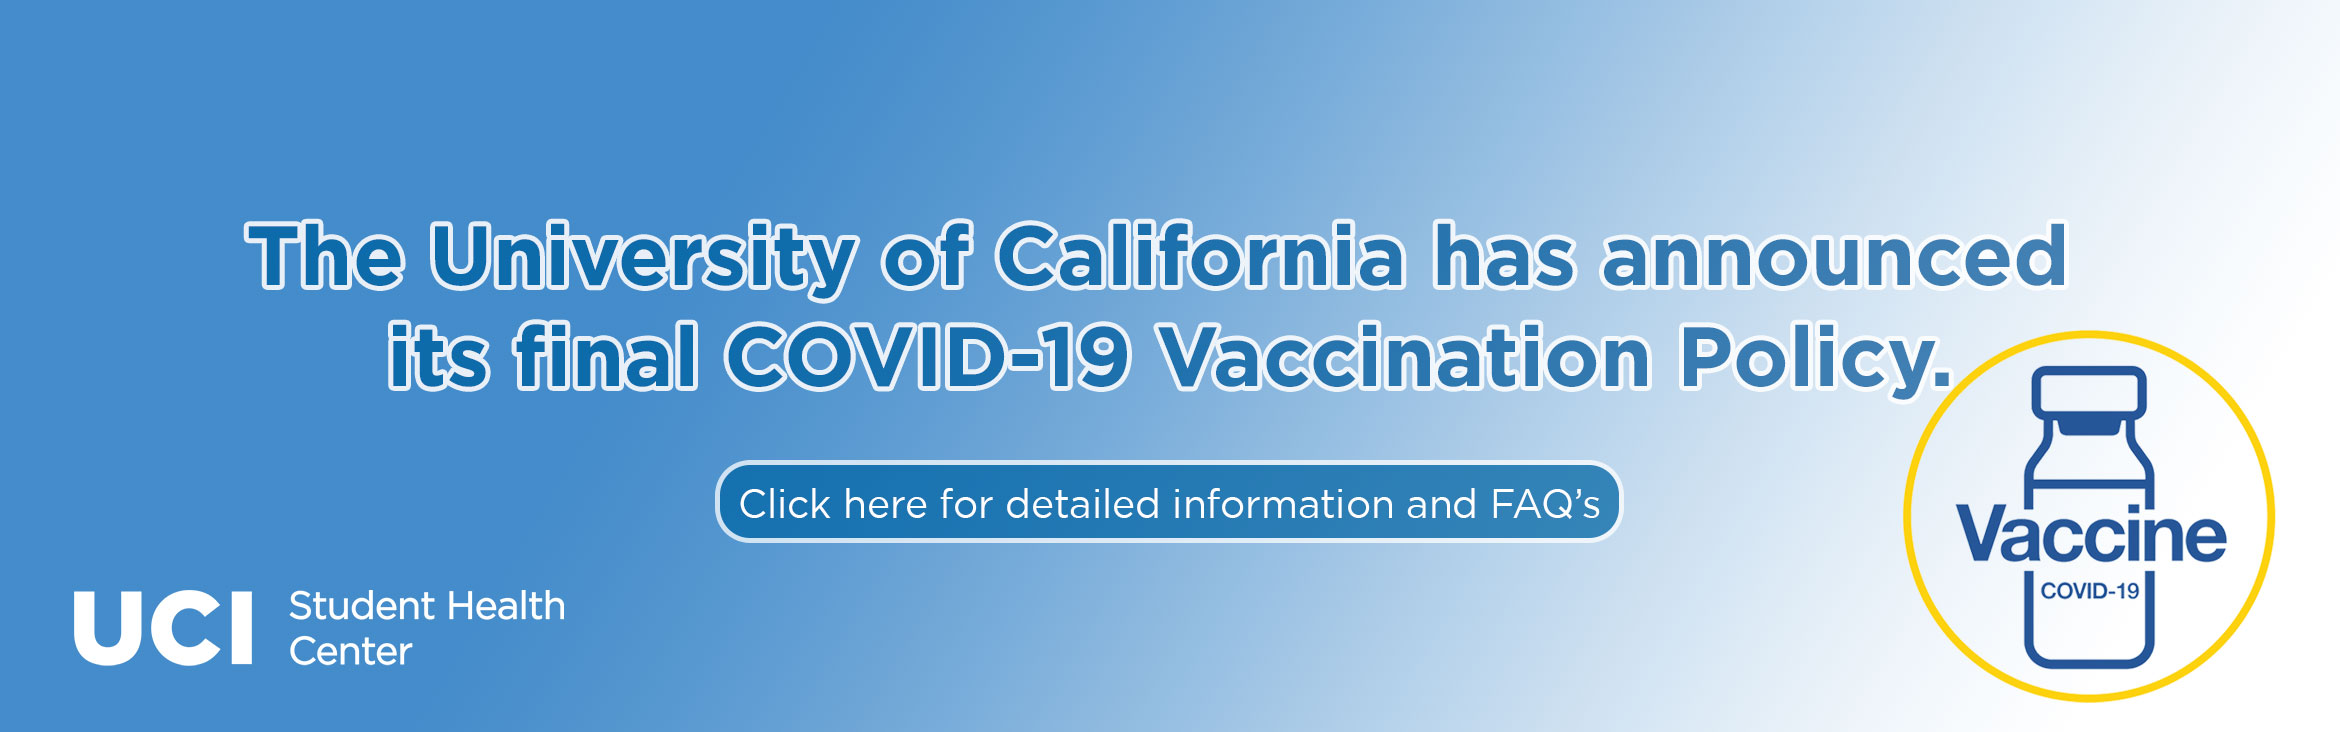 The University of California has announced its final COVID-19 Vaccination Policy